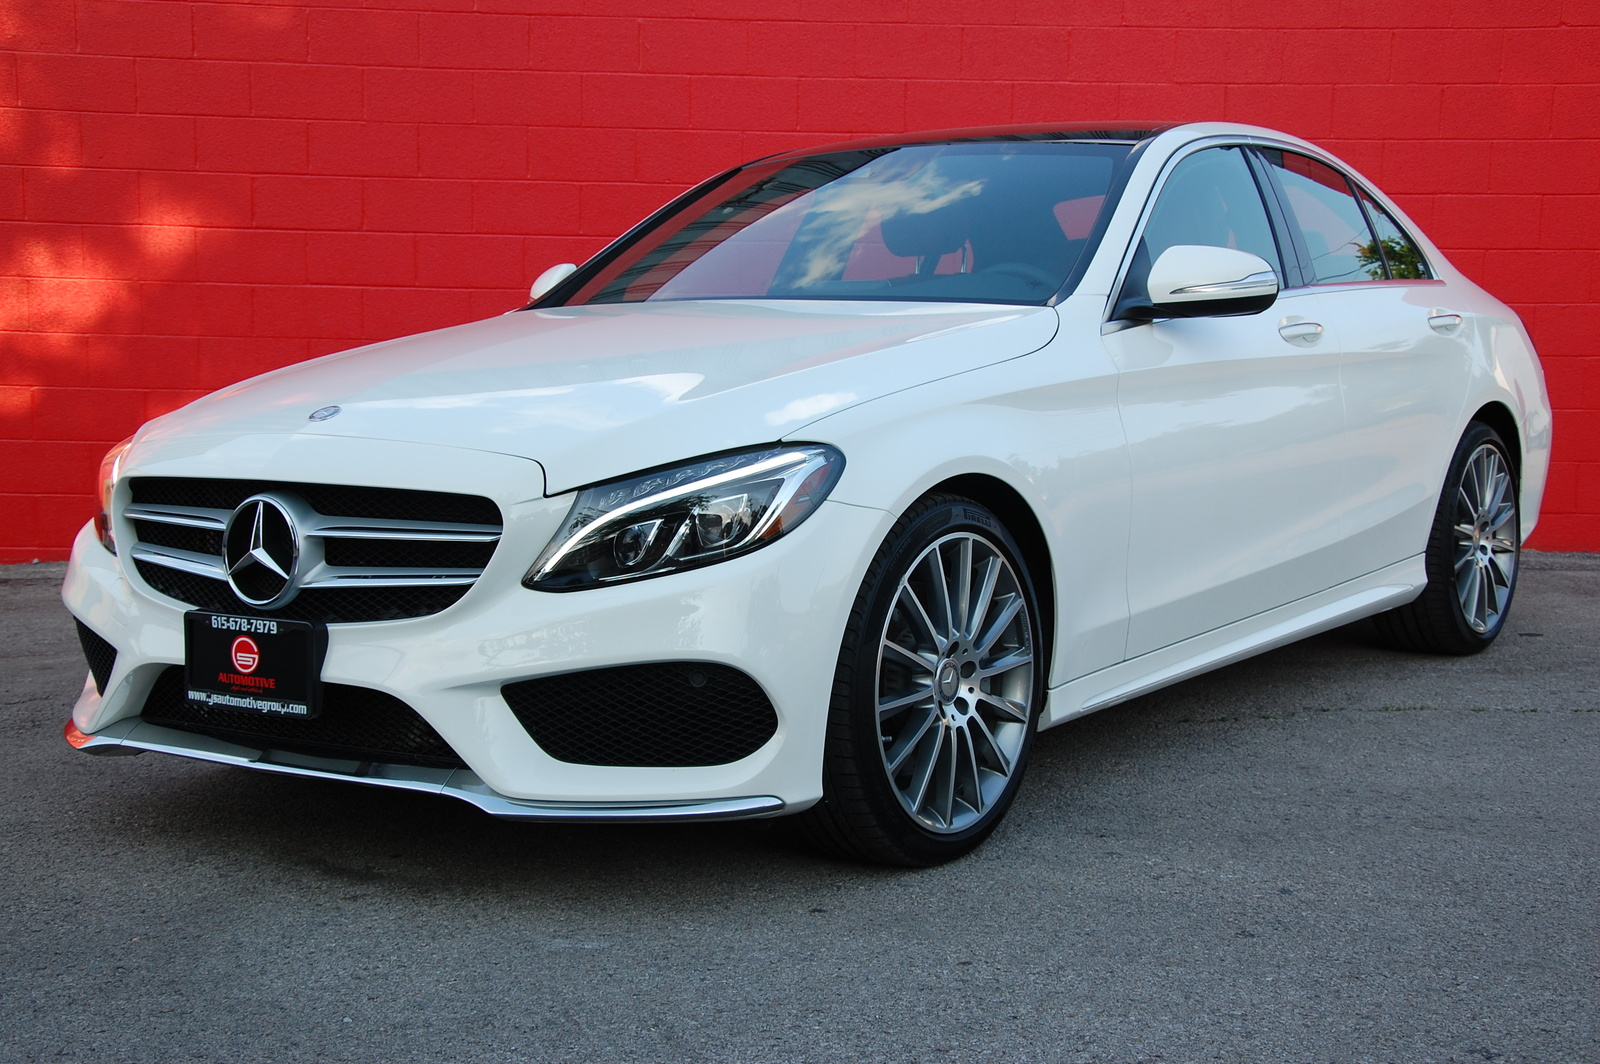 New 2014 2015 mercedes benz c class for sale cargurus for Mercedes benz c class pictures